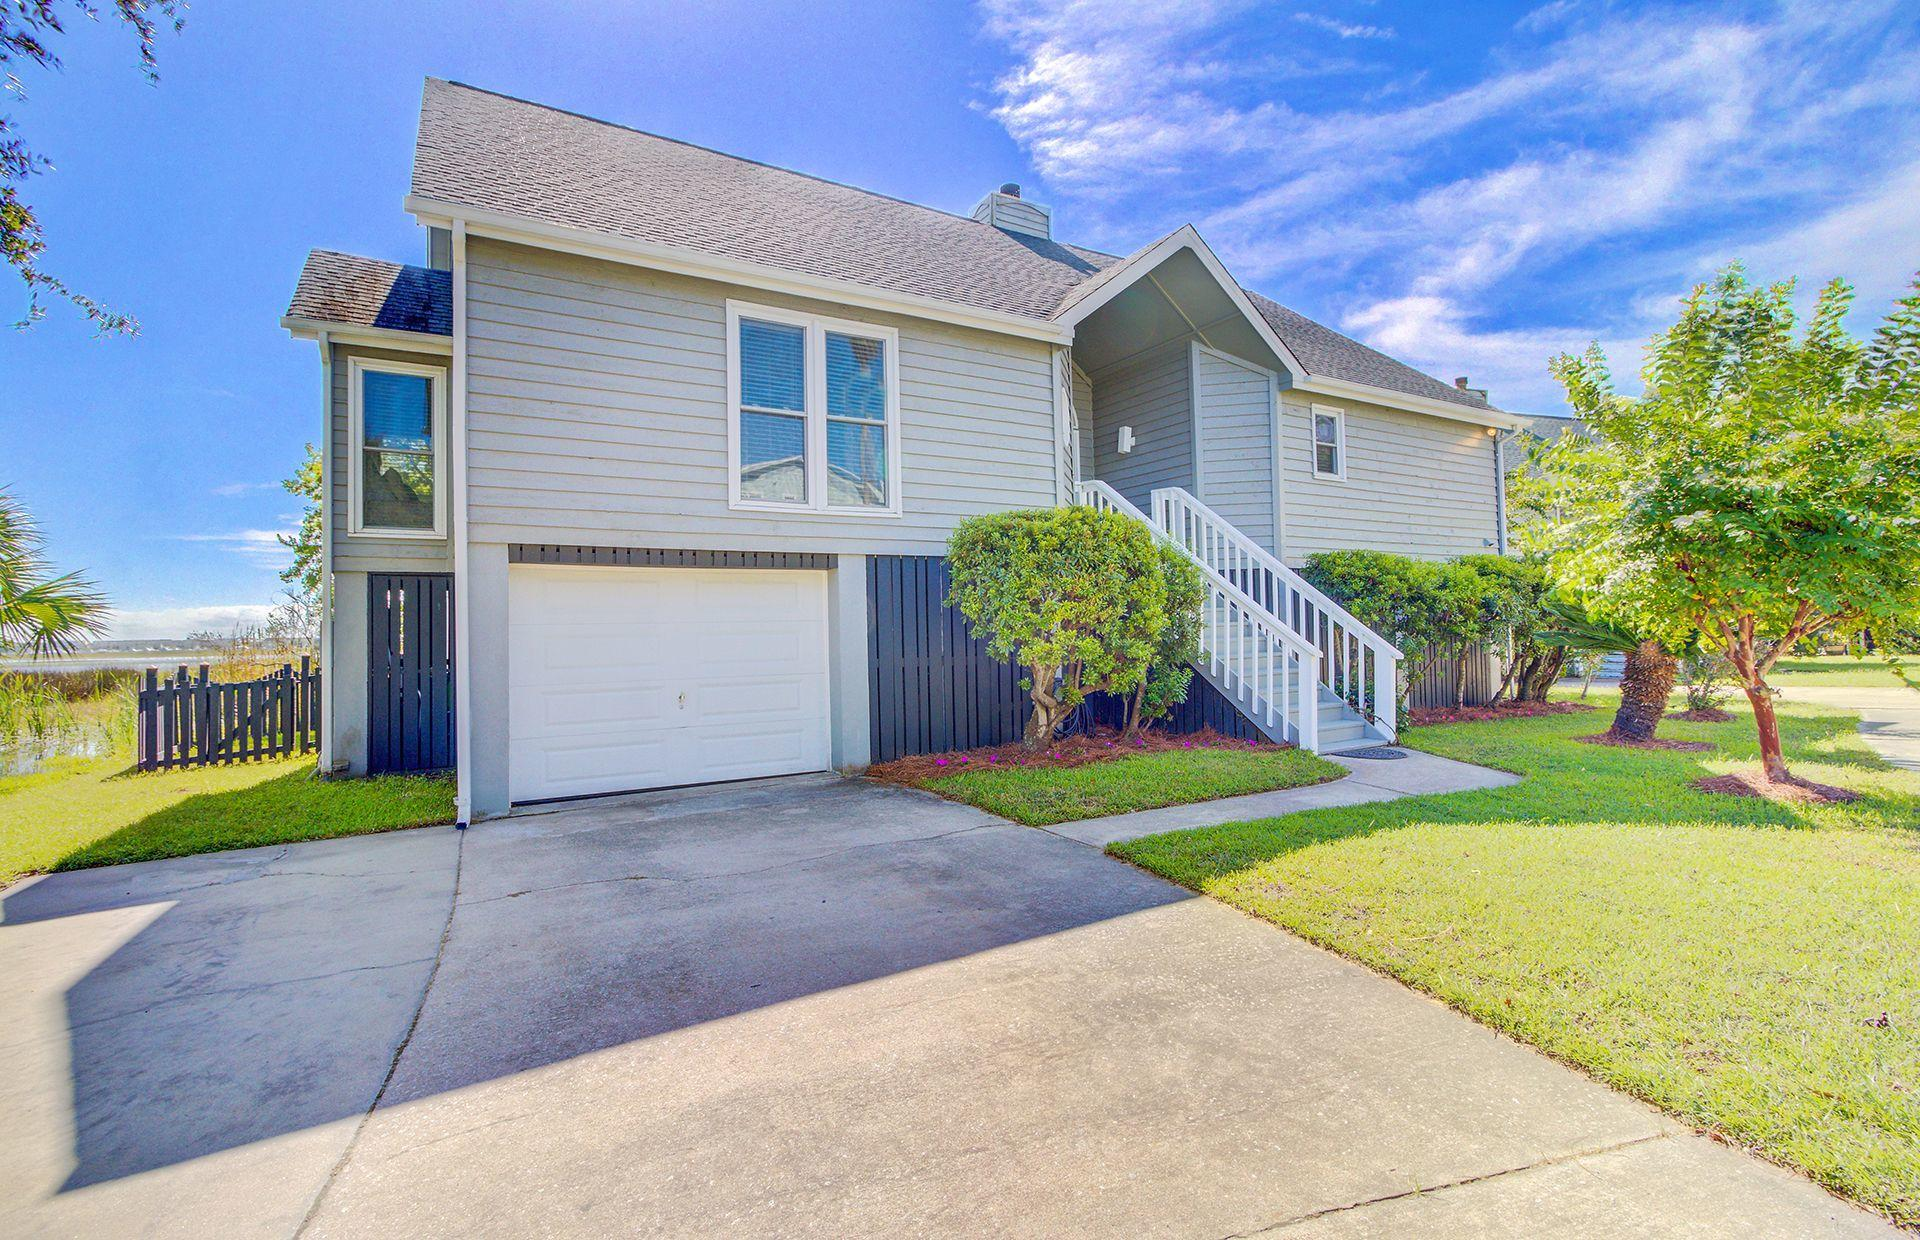 Old Mt Pleasant Homes For Sale - 1543 Privateer, Mount Pleasant, SC - 6